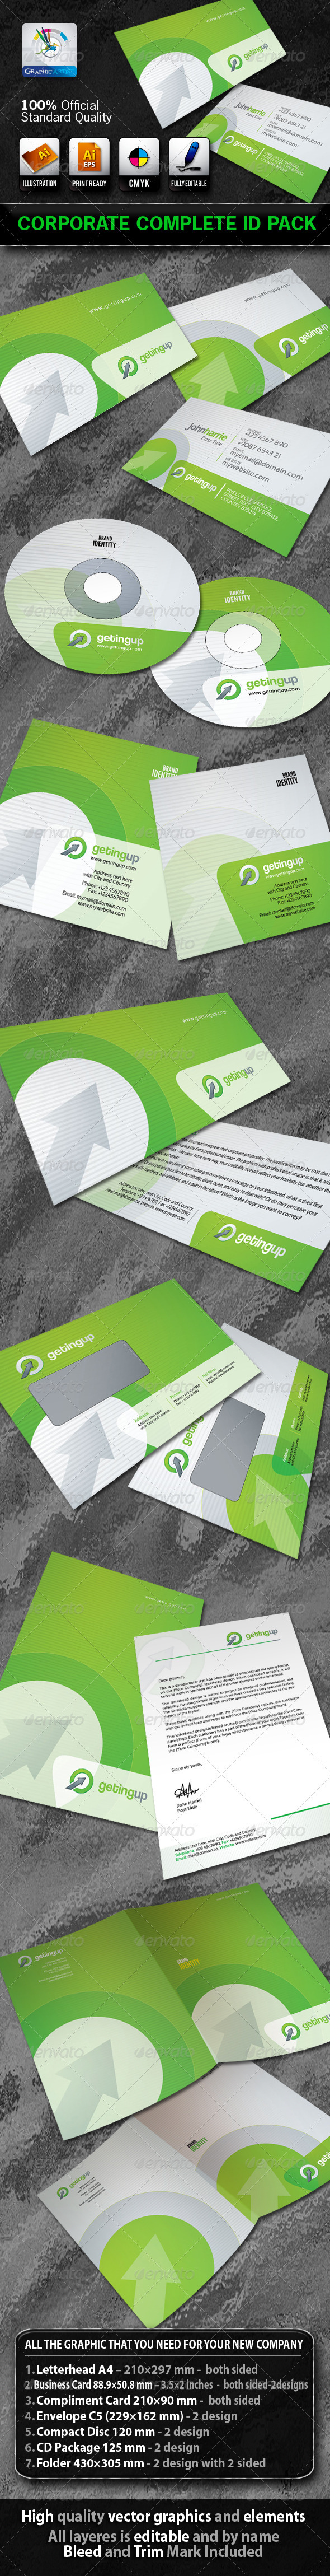 GettingUp Business Corporate ID Pack+Logo - Stationery Print Templates